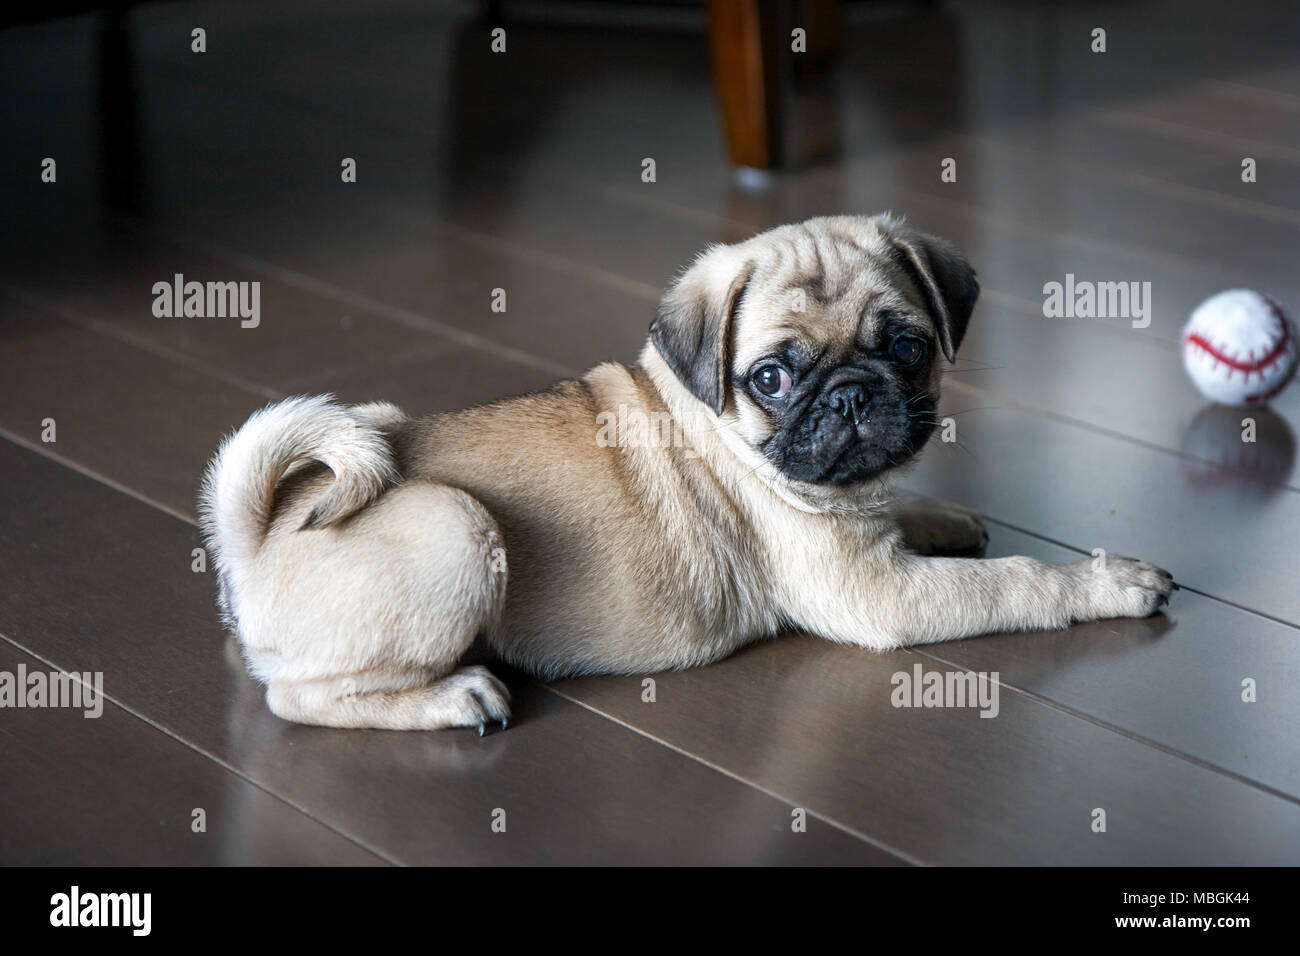 Pug Puppy Playing on the Floor - Stock Image